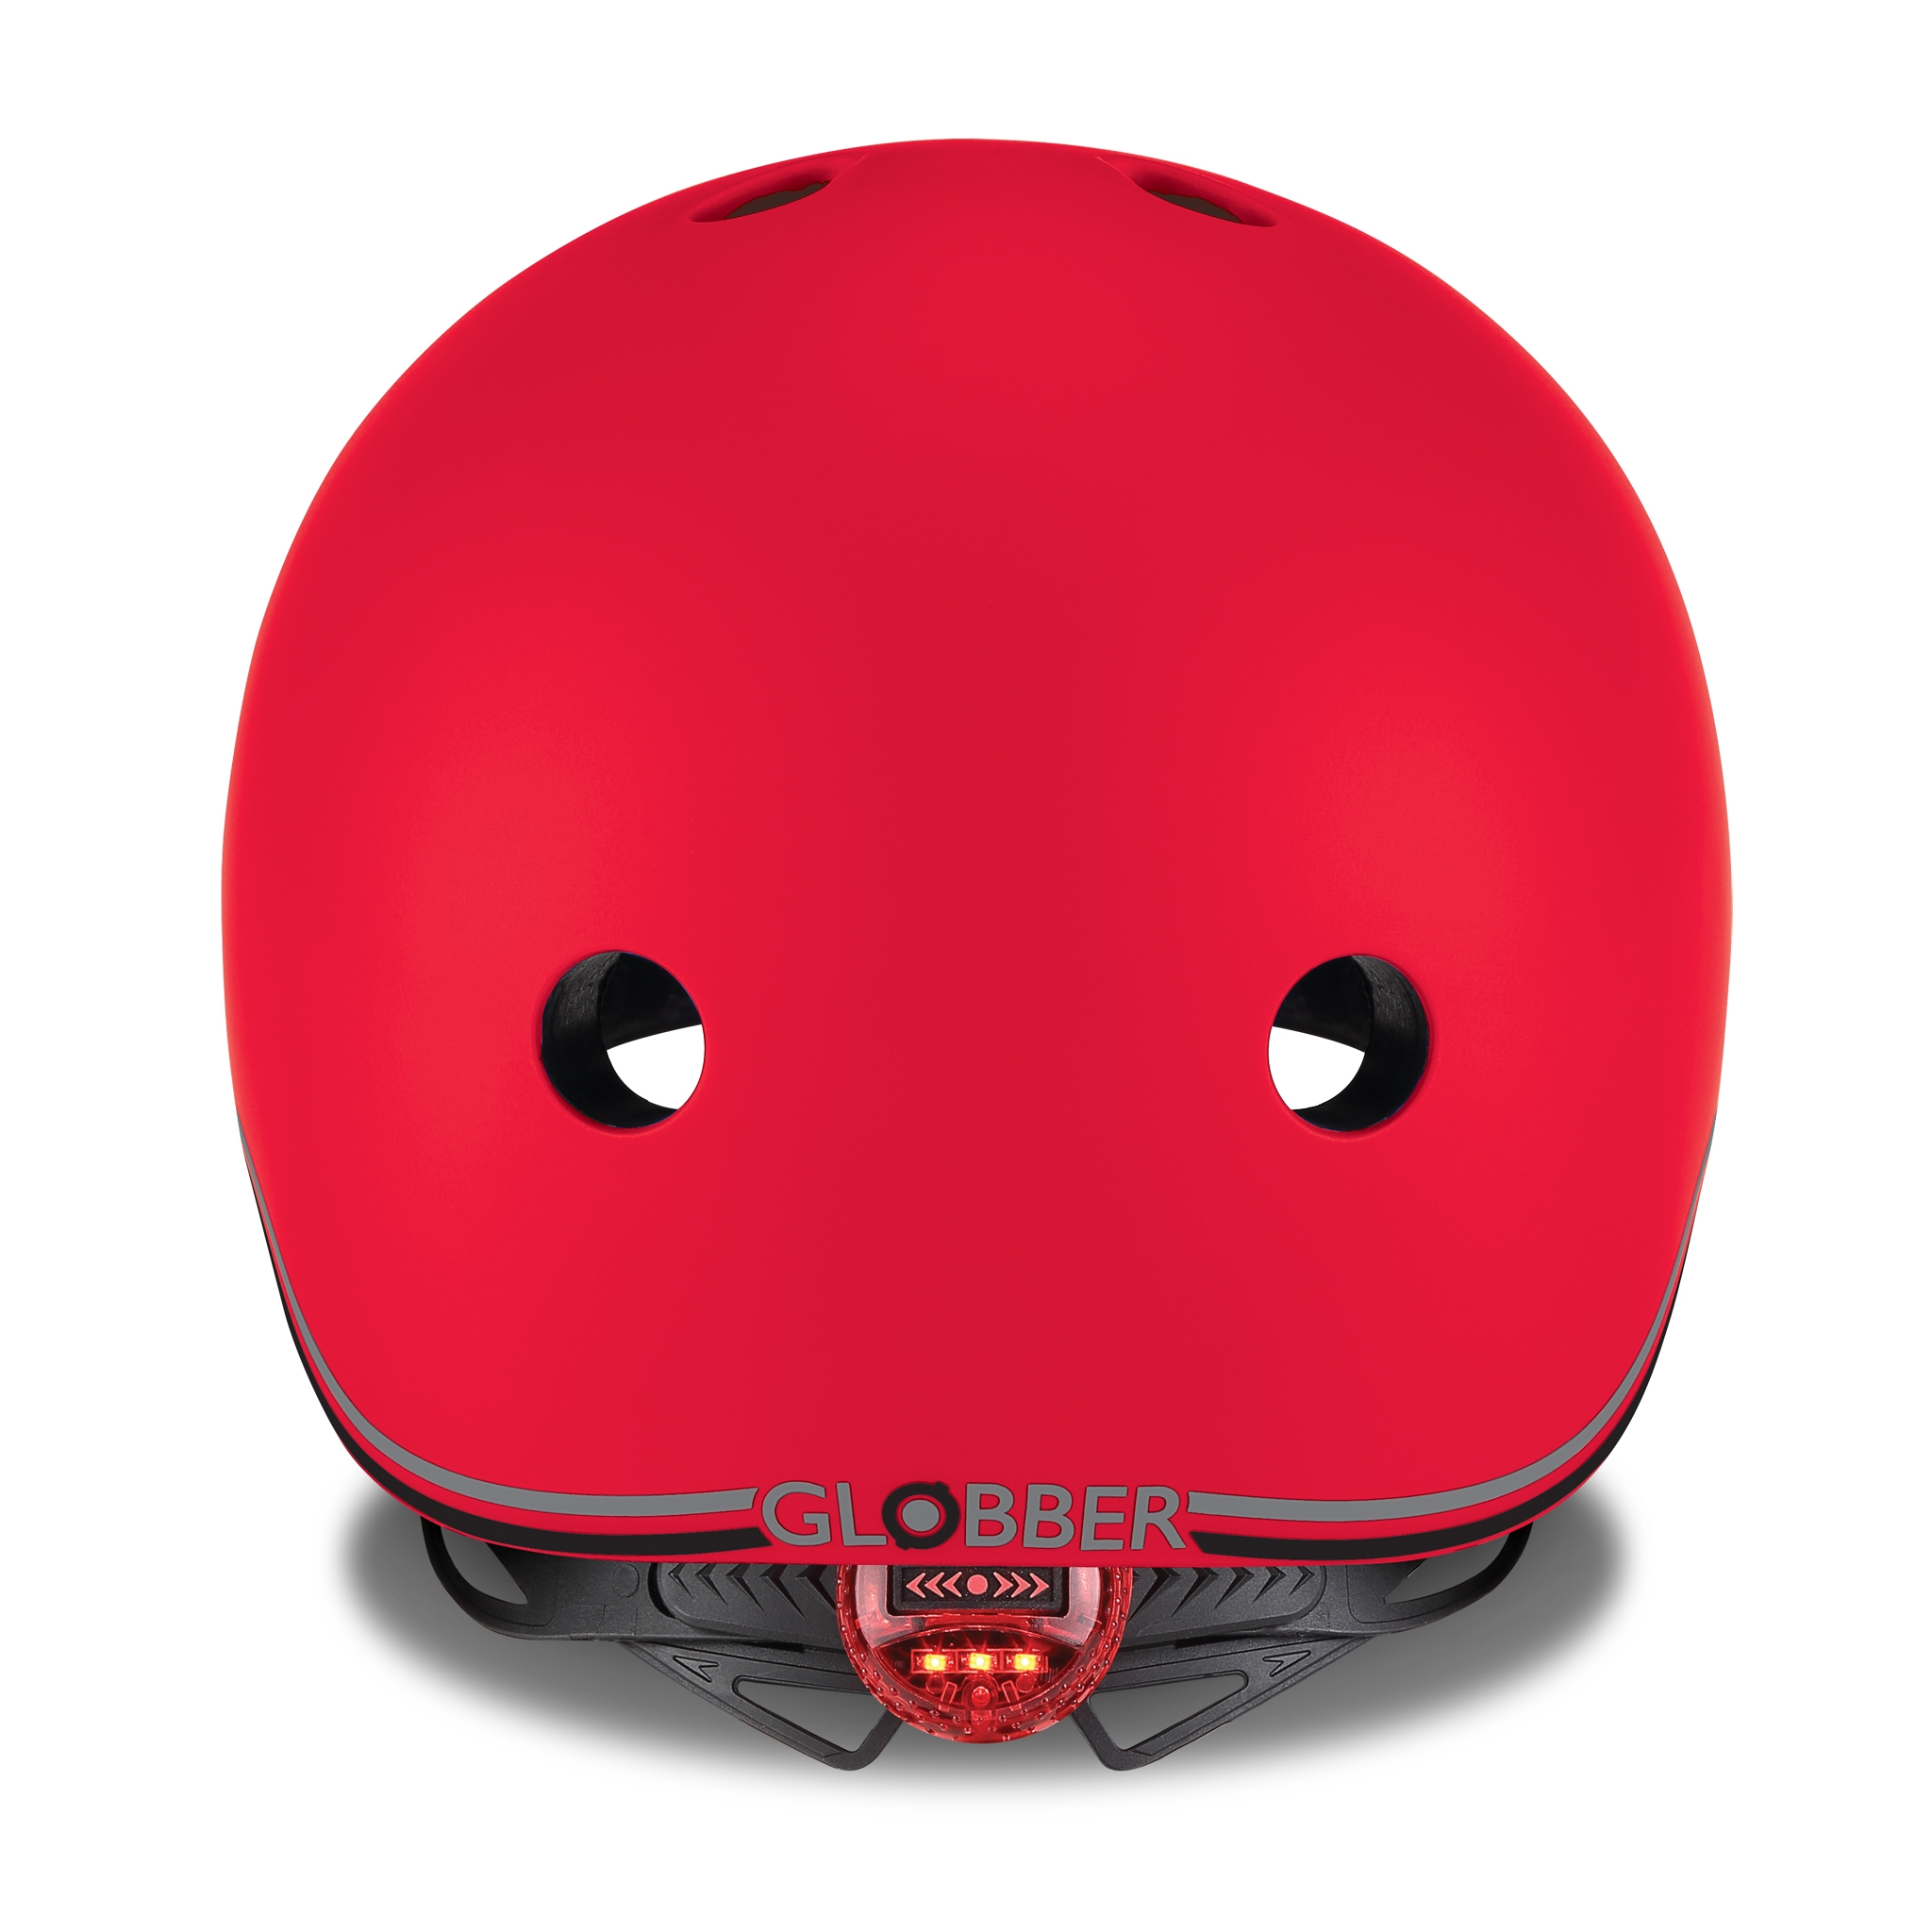 EVO-helmets-scooter-helmets-for-toddlers-with-LED-lights-safe-helmet-for-toddlers-new-red 2